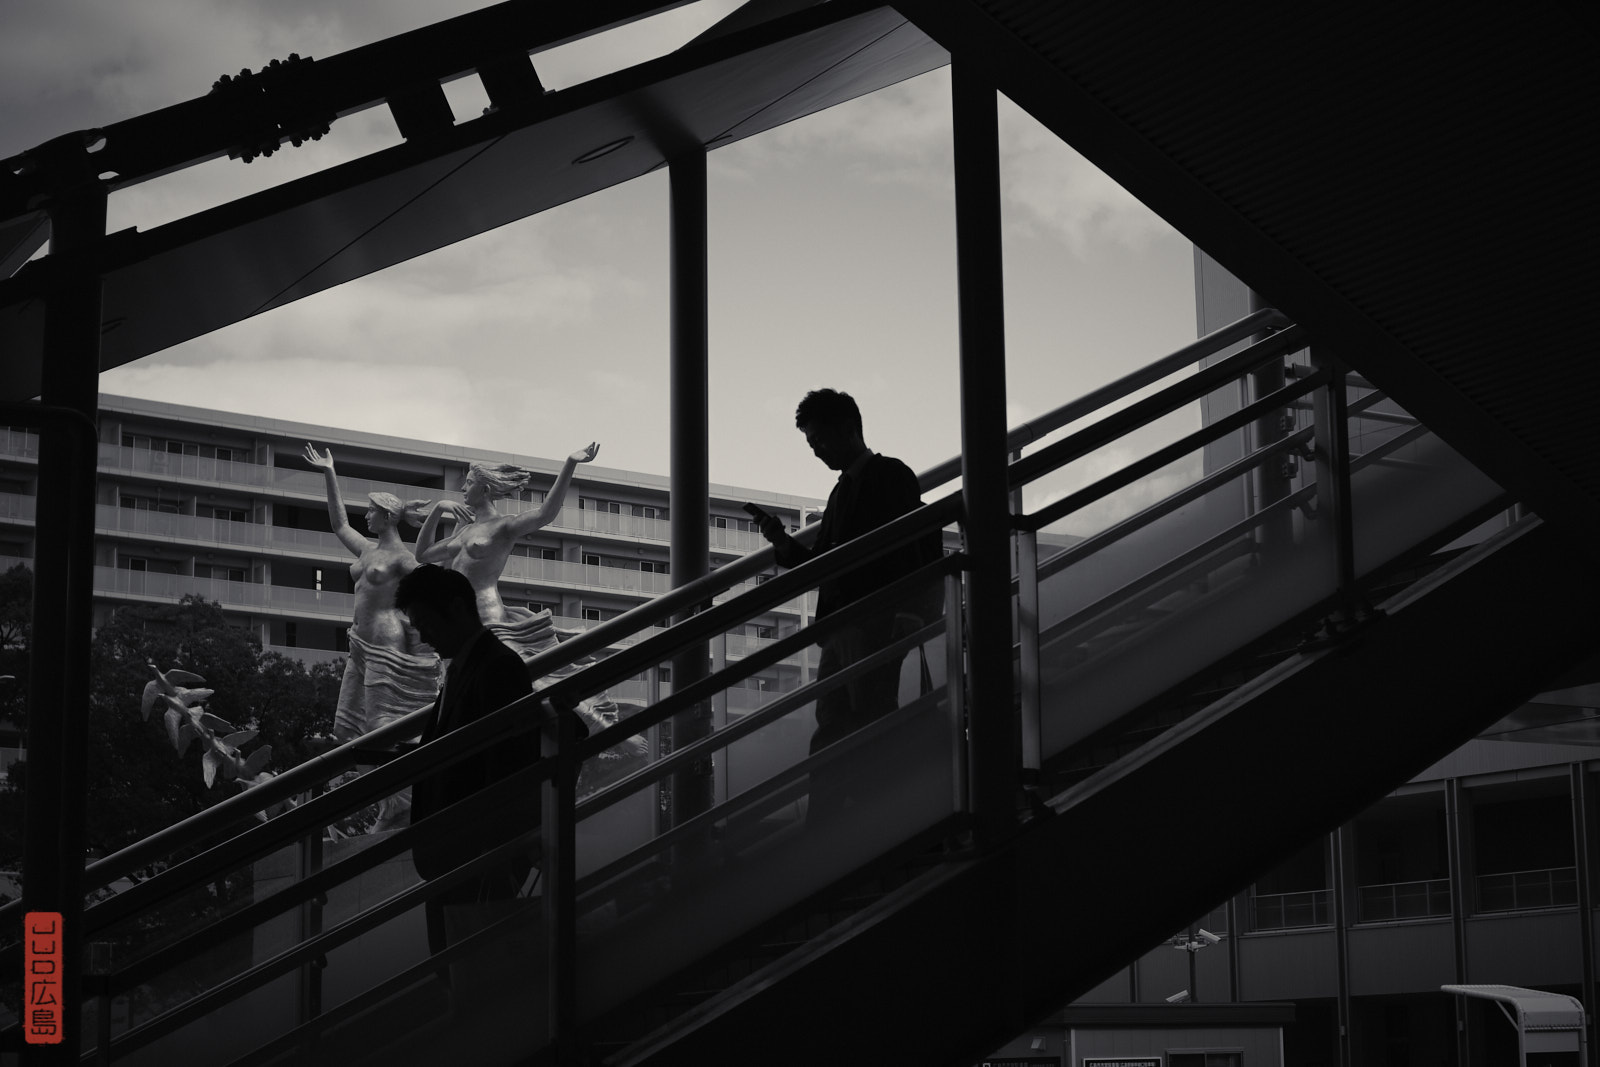 Gare d'Hiroshima, sortie Nord, silhouettes